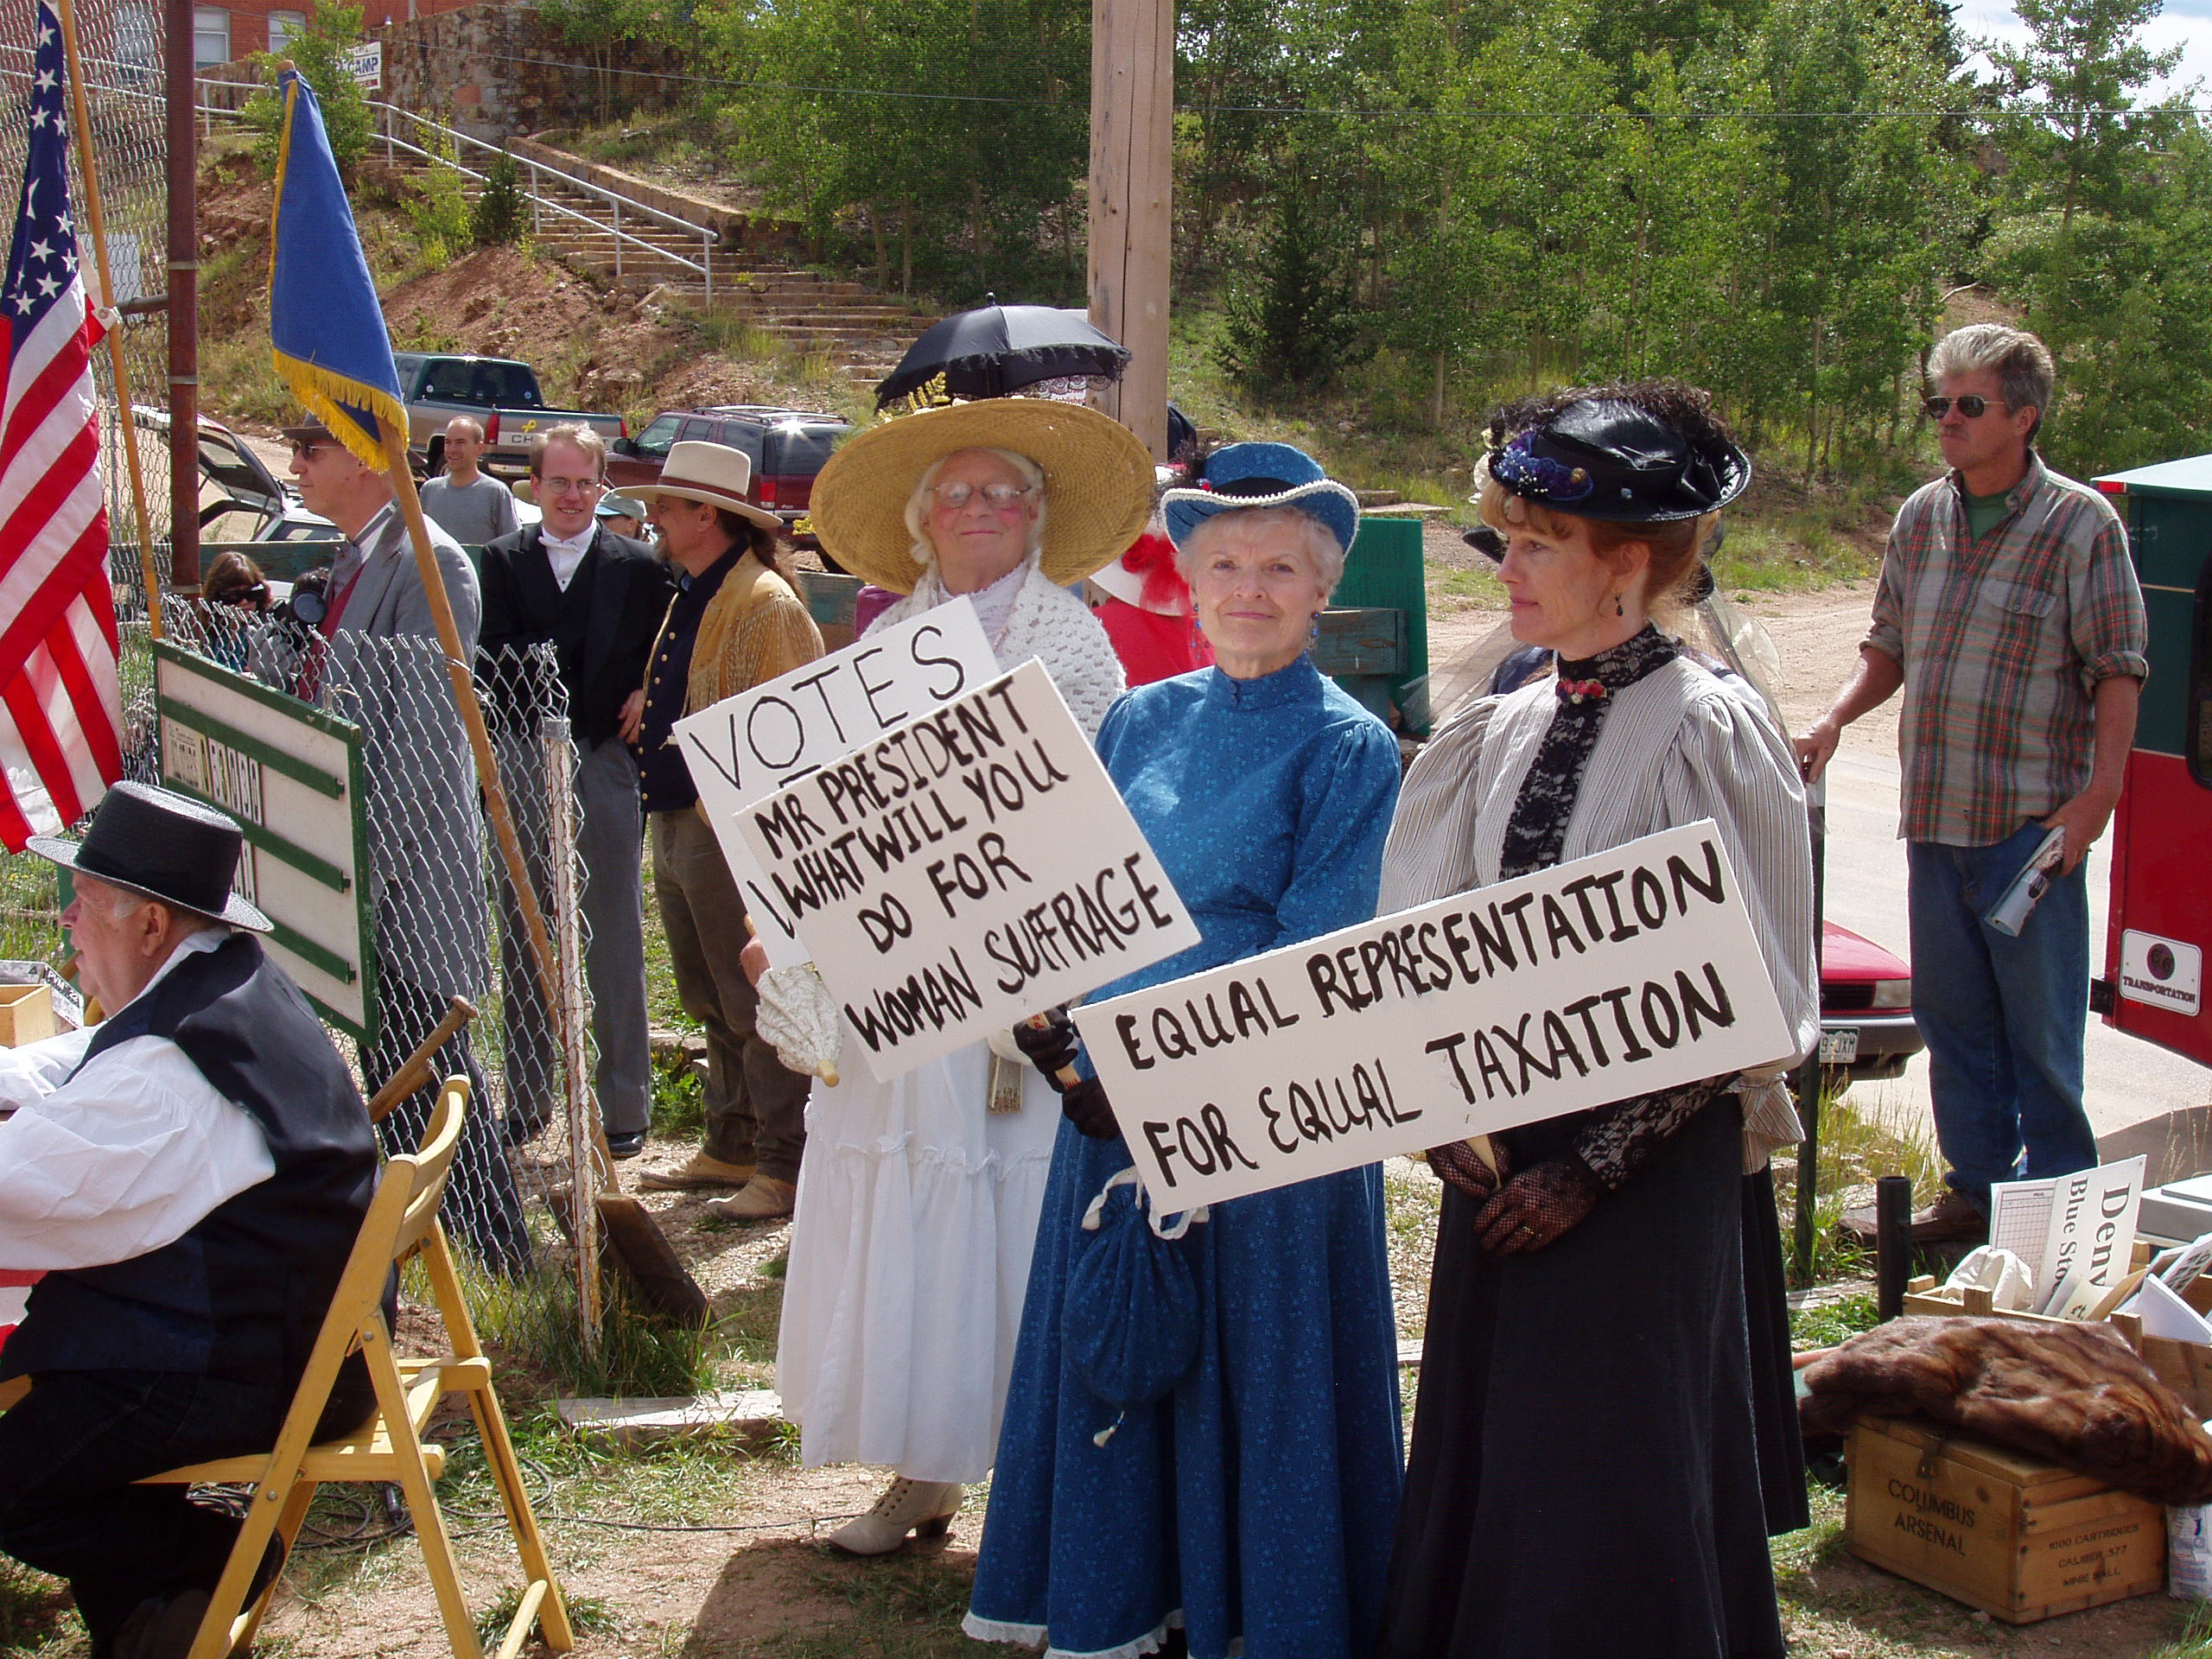 """Sufferagettes"" picket a vintage baseball game in Cripple Creek, Colorado"